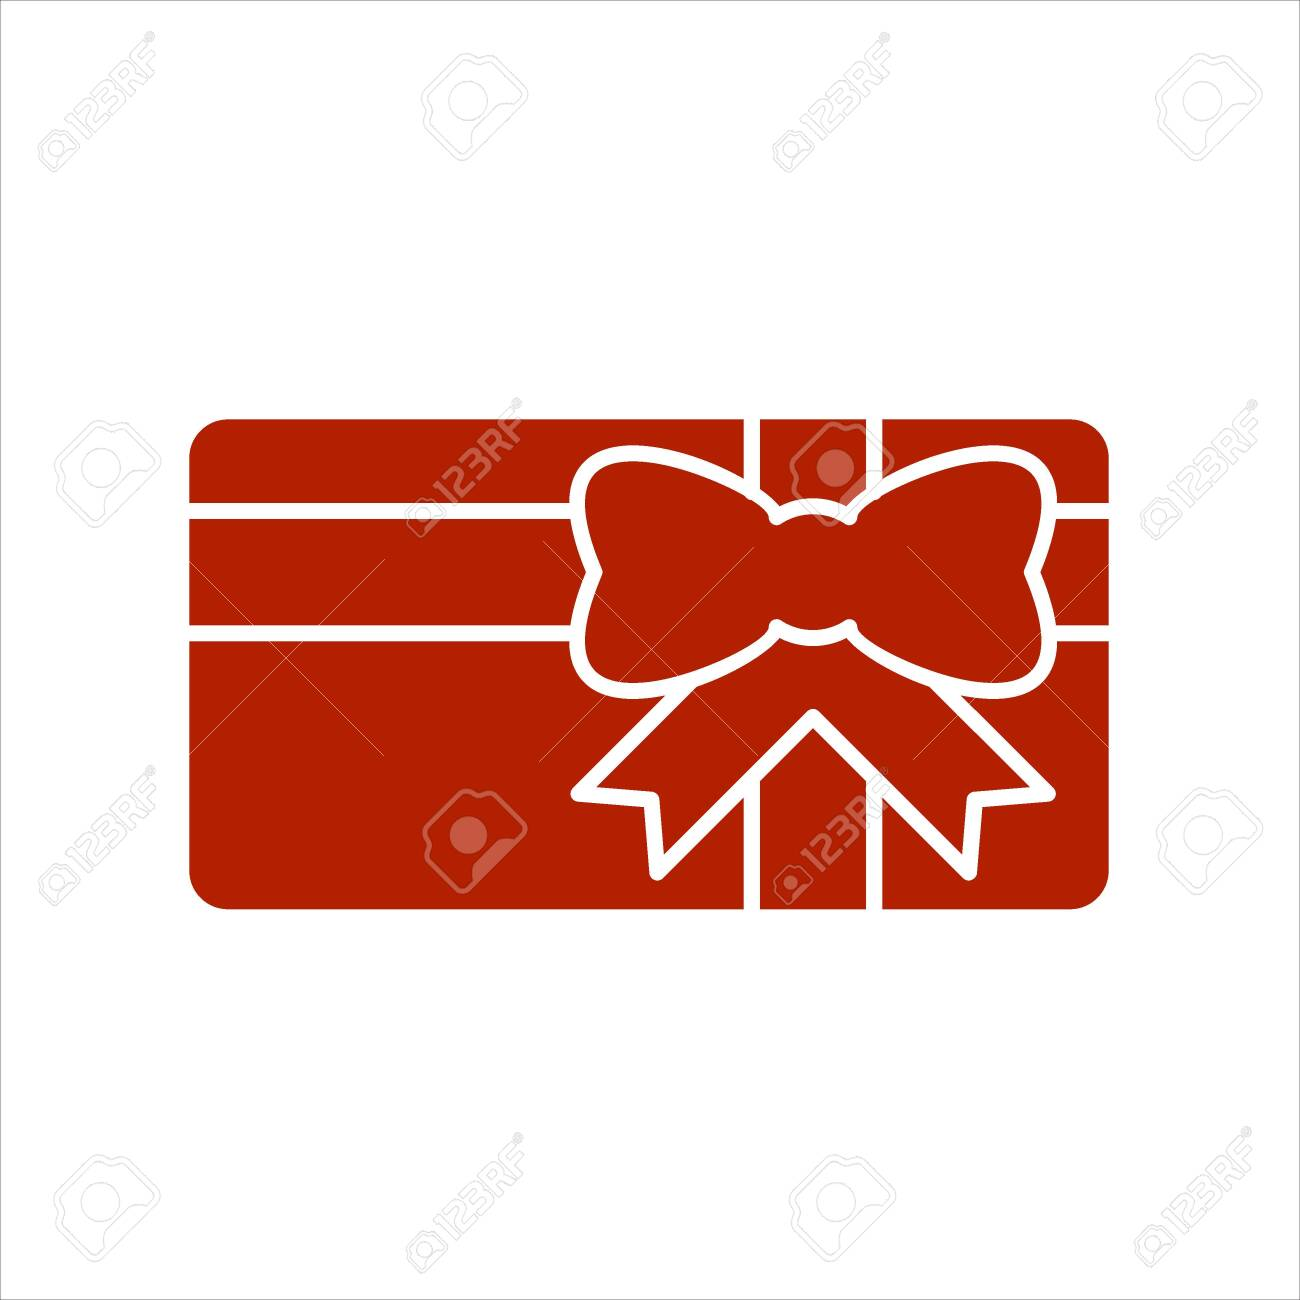 Gift card icon. Present card with ribbon and bow. Solid icon. Special offer sign, promo card. - 137469940